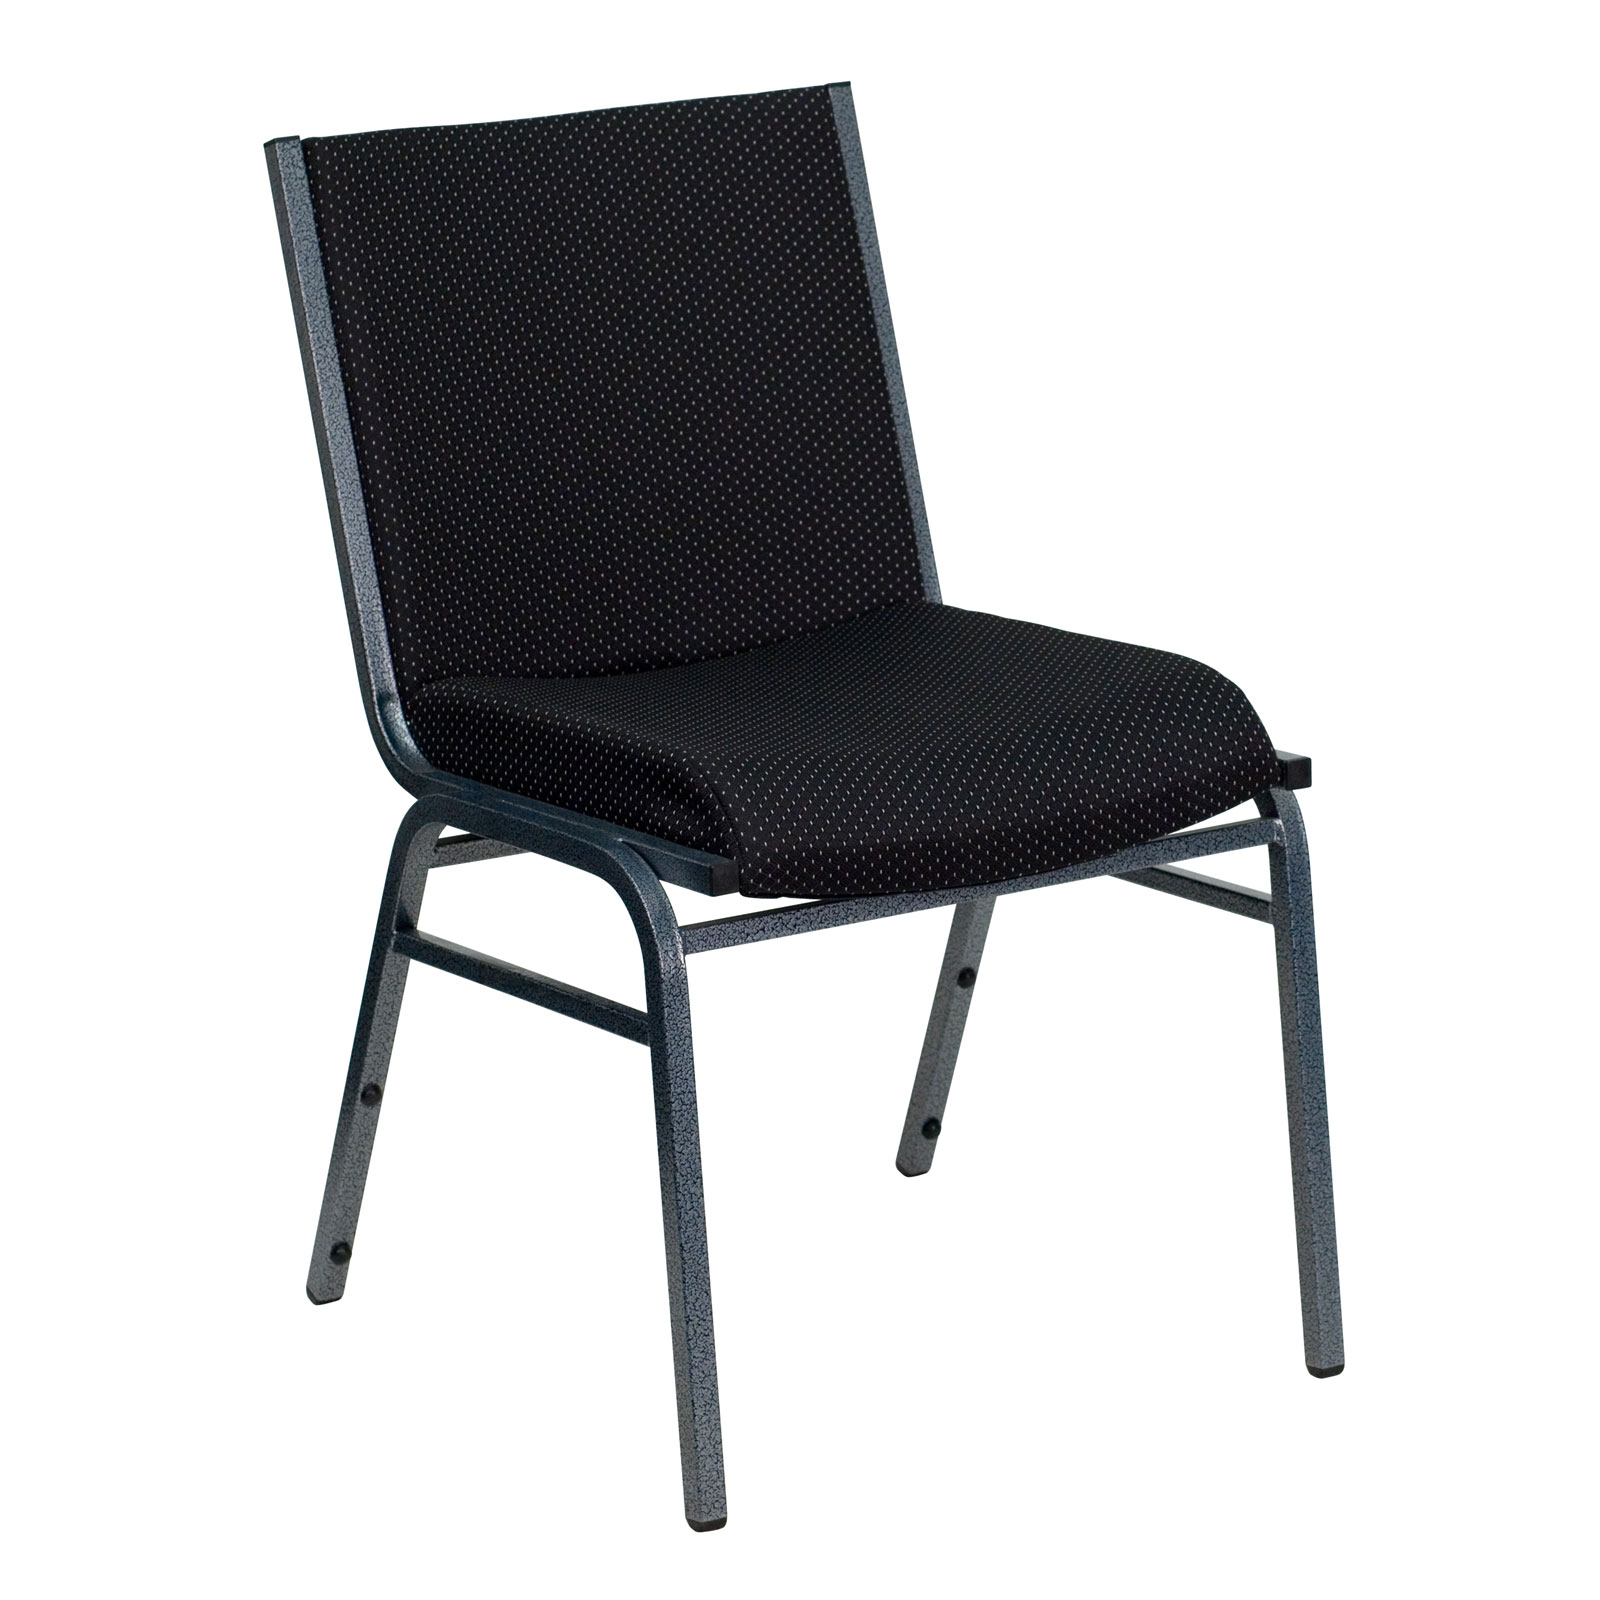 HERCULES Series Heavy Duty 3 Inch Thickly Padded Stack Chair By Flash Furnitu